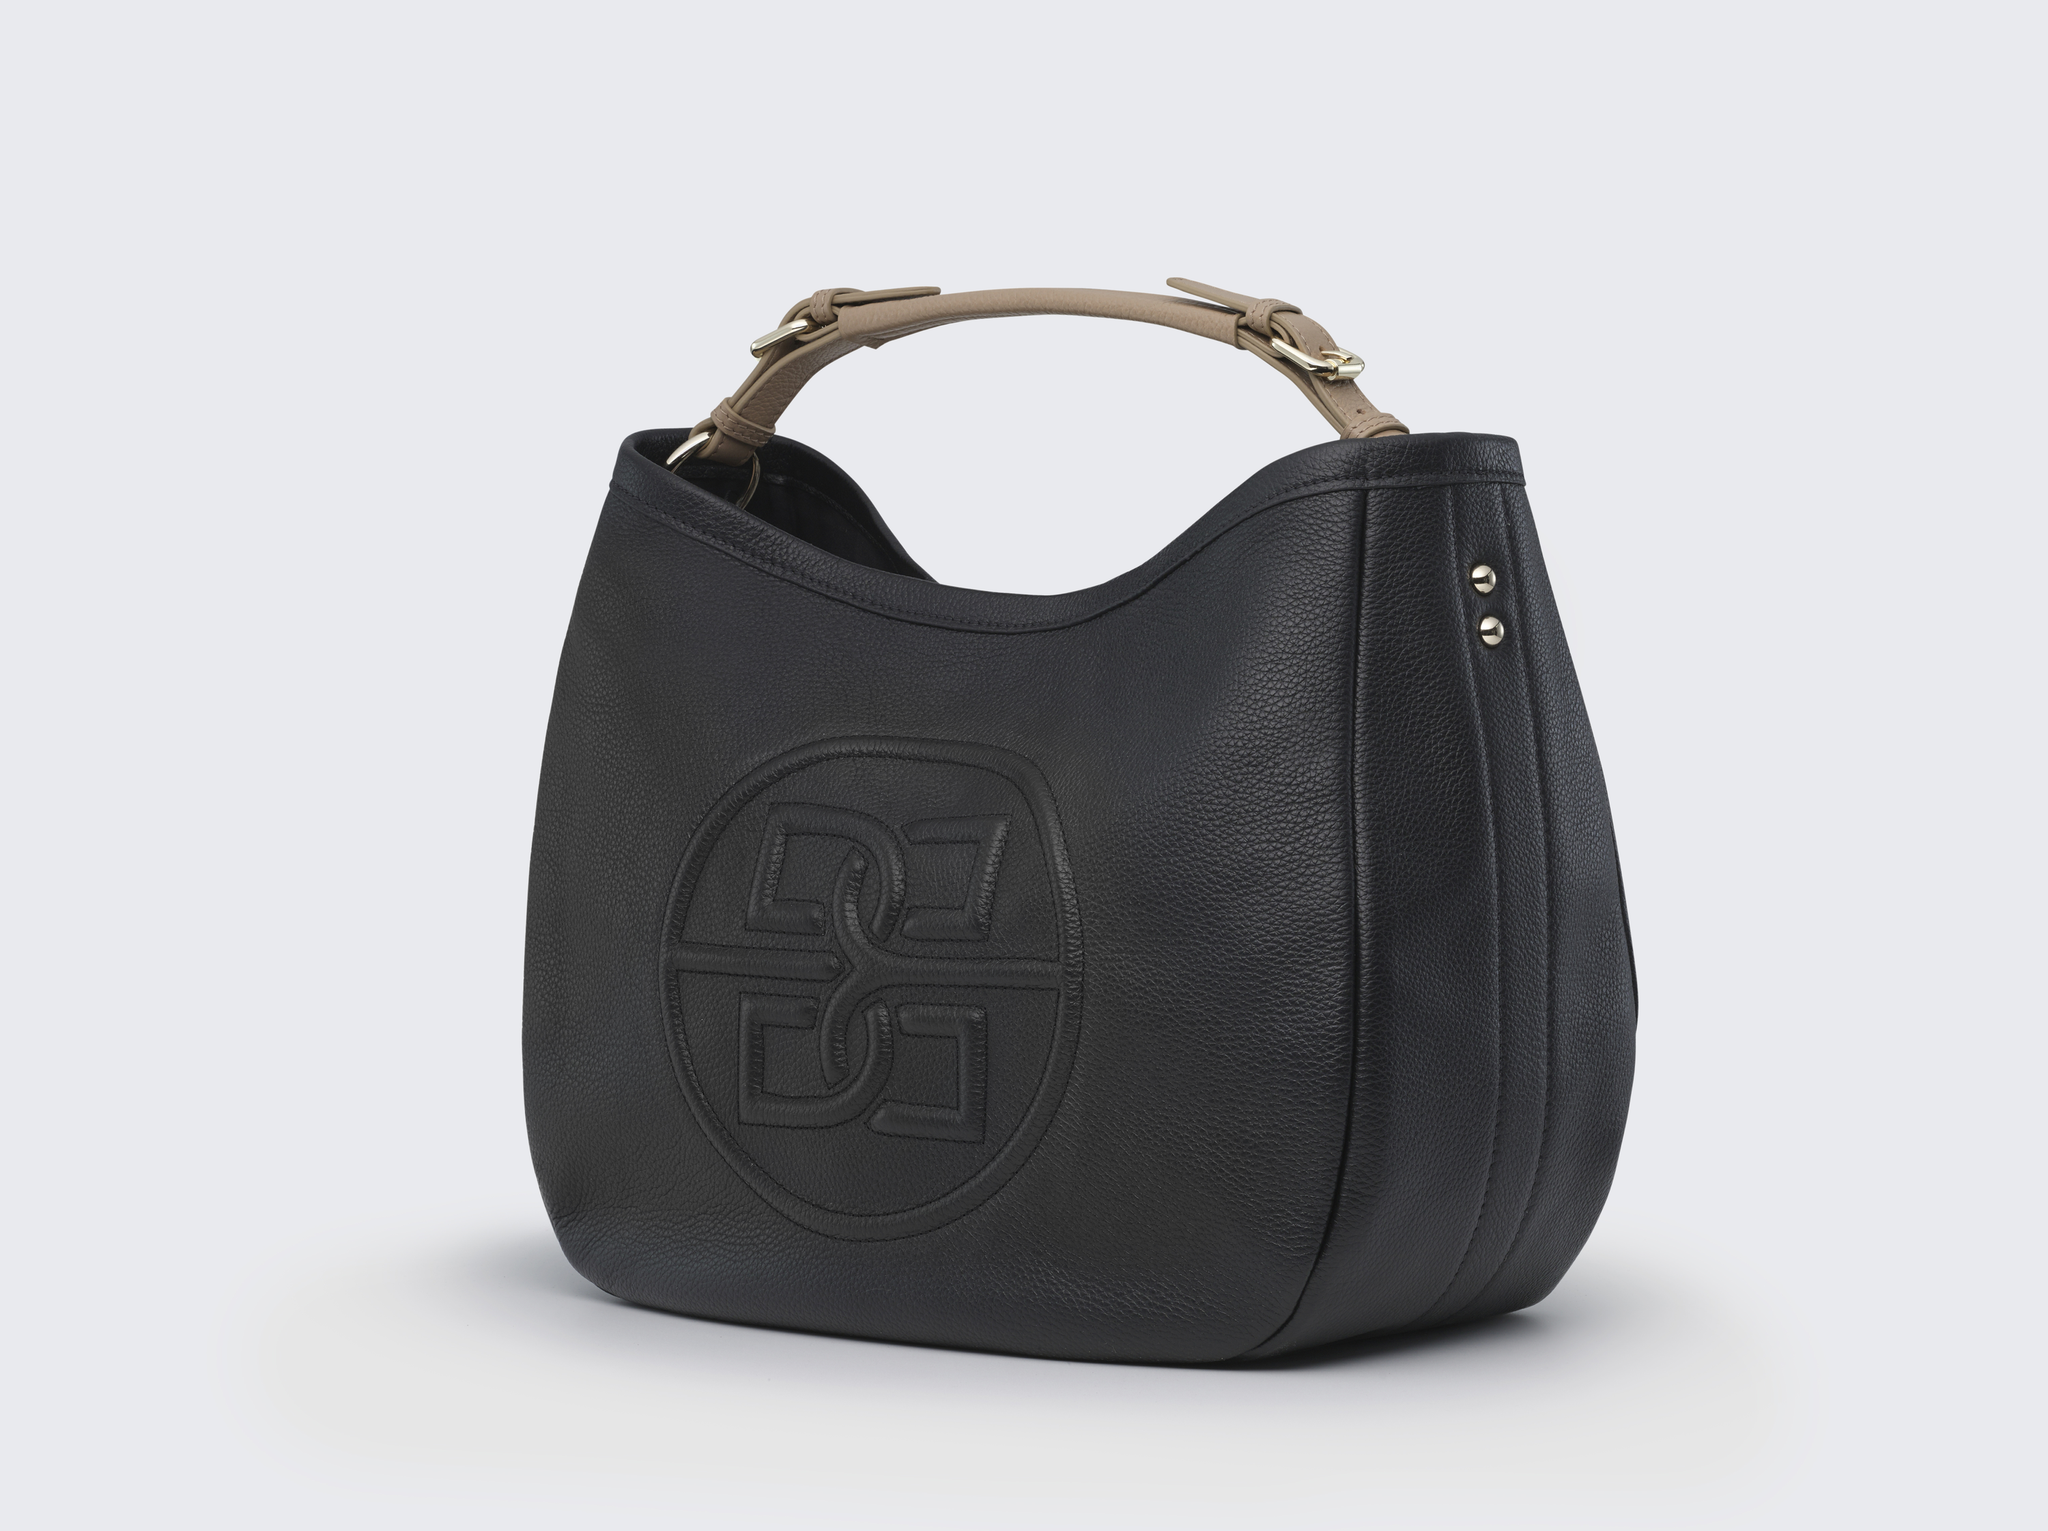 The Bolvaint René Noir Motif Bag